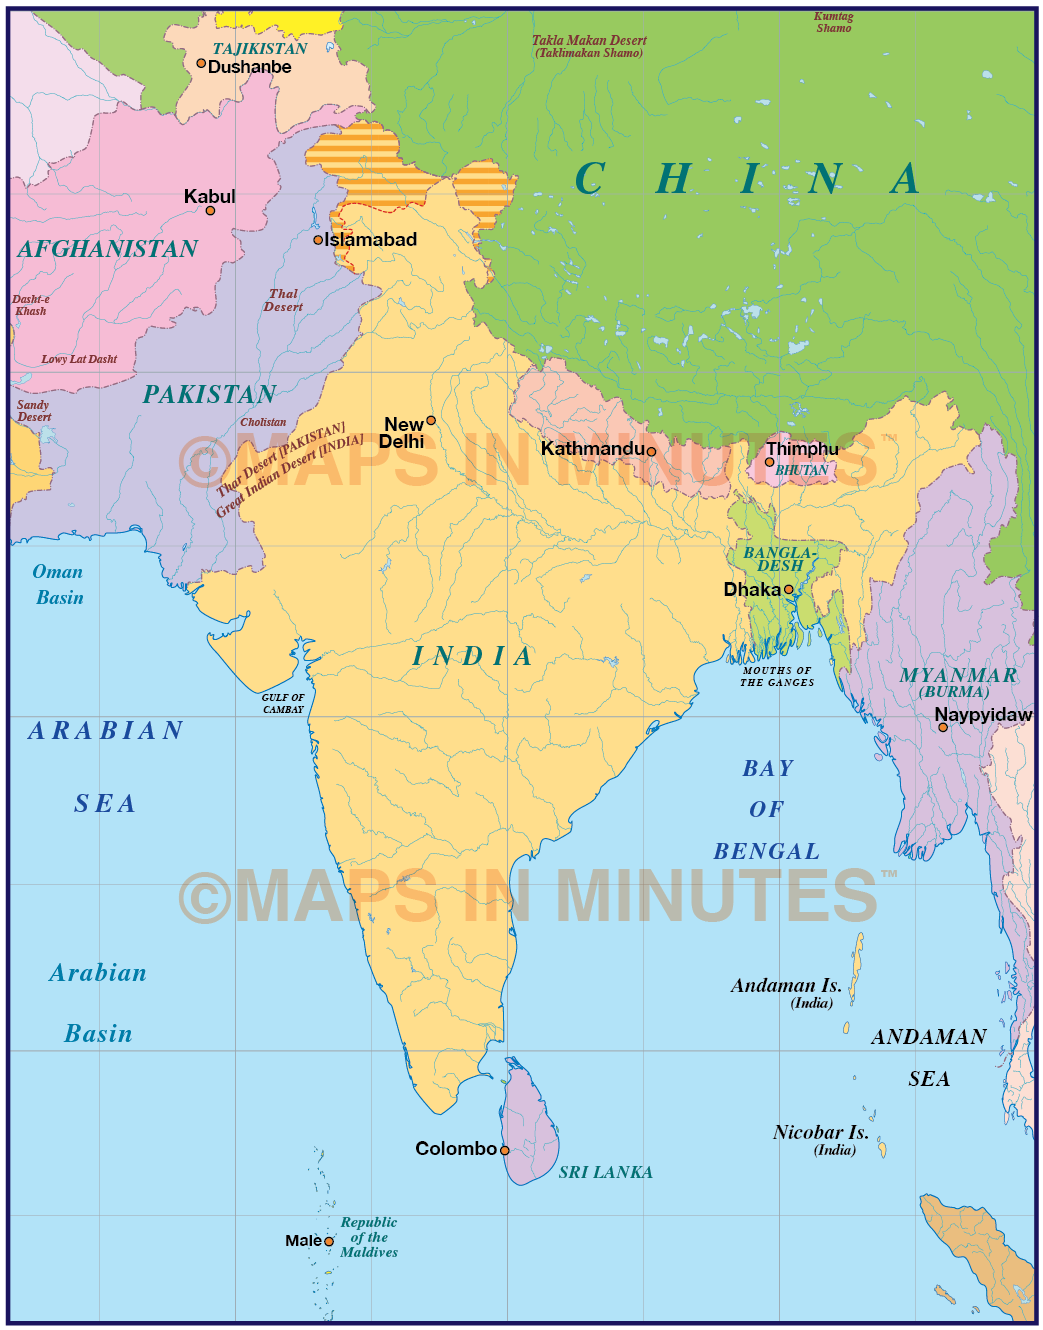 Map Of Asia India.India Simple Political Map 10 000 000 Scale Asia Country Maps